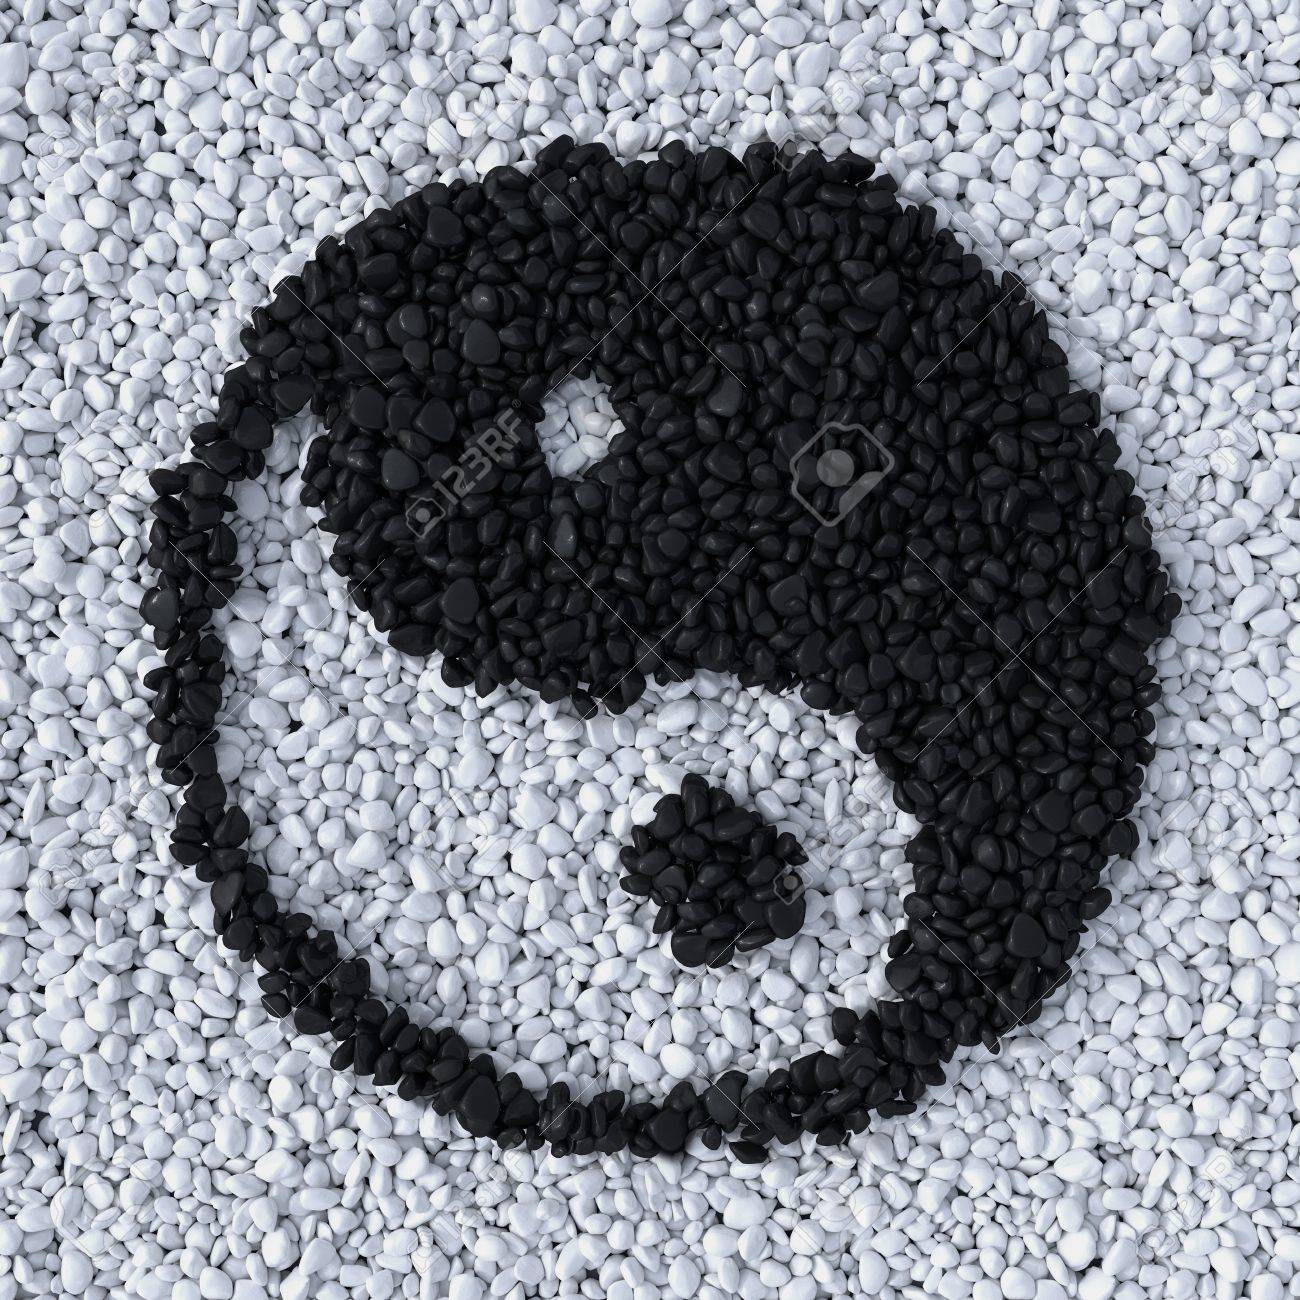 Yinyang Symbol Made Of Gravel Stones Top View Stock Photo Picture